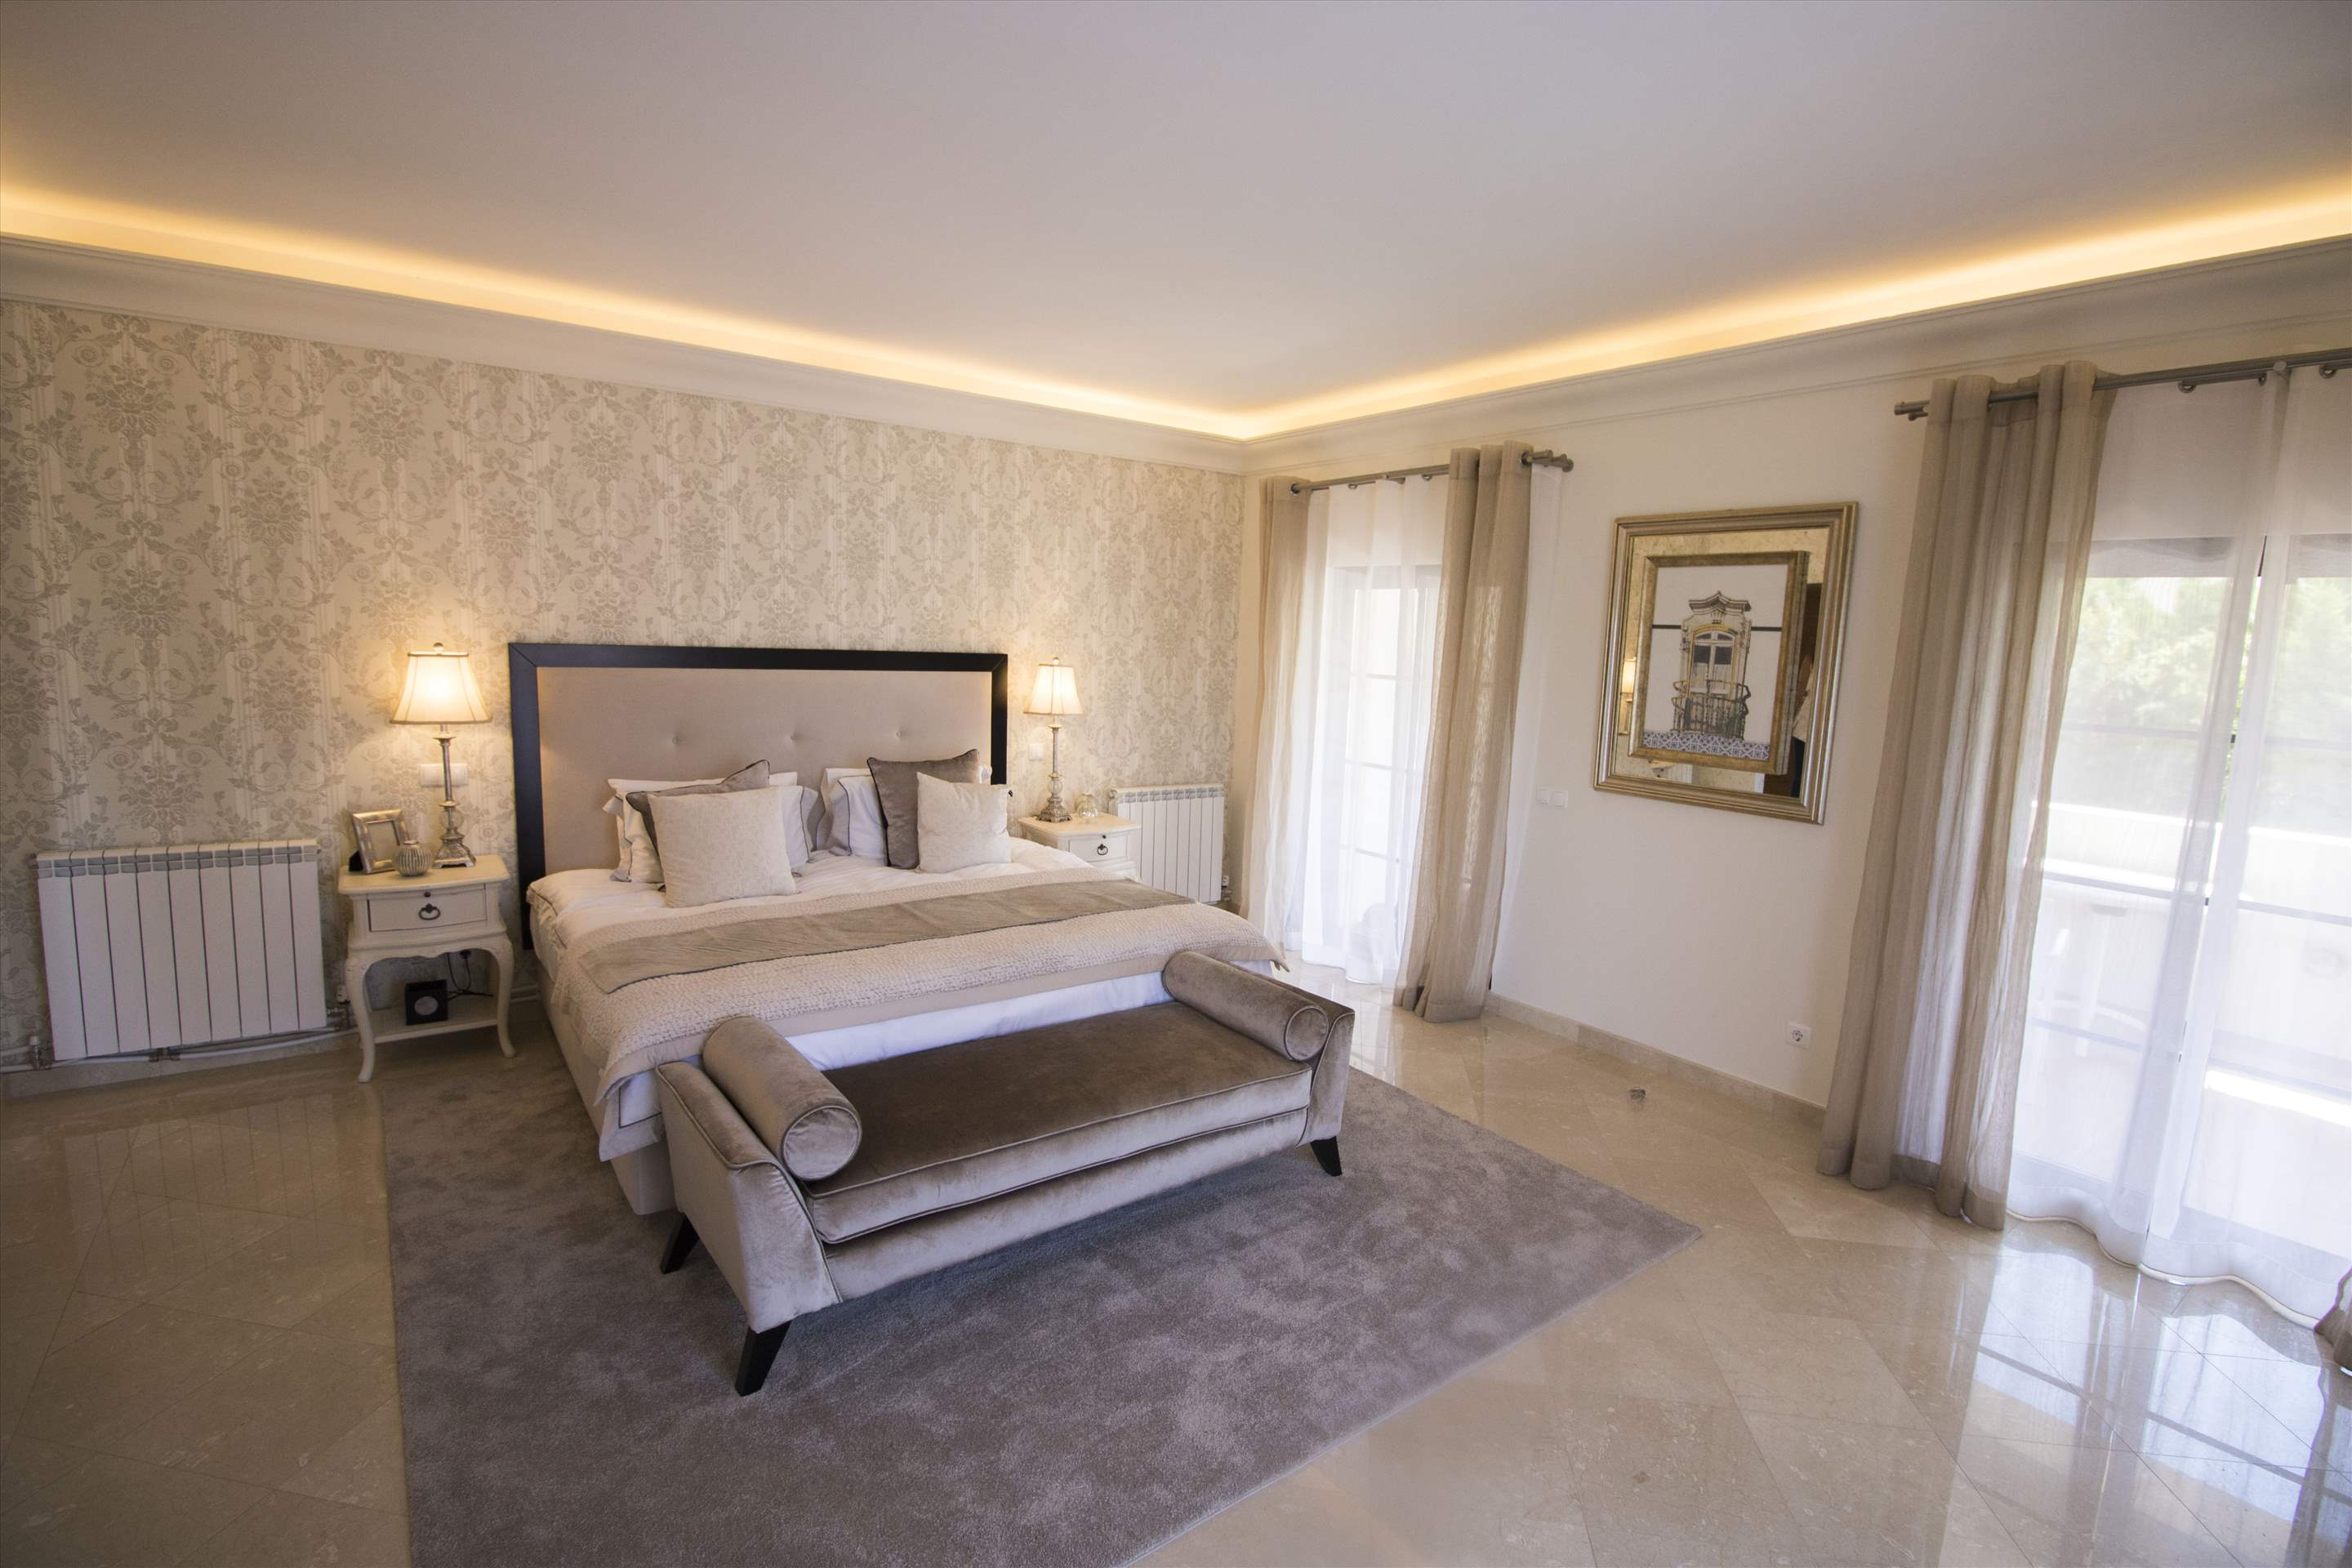 Villa Meryl, 5 bedroom villa in Vale do Lobo, Algarve Photo #19